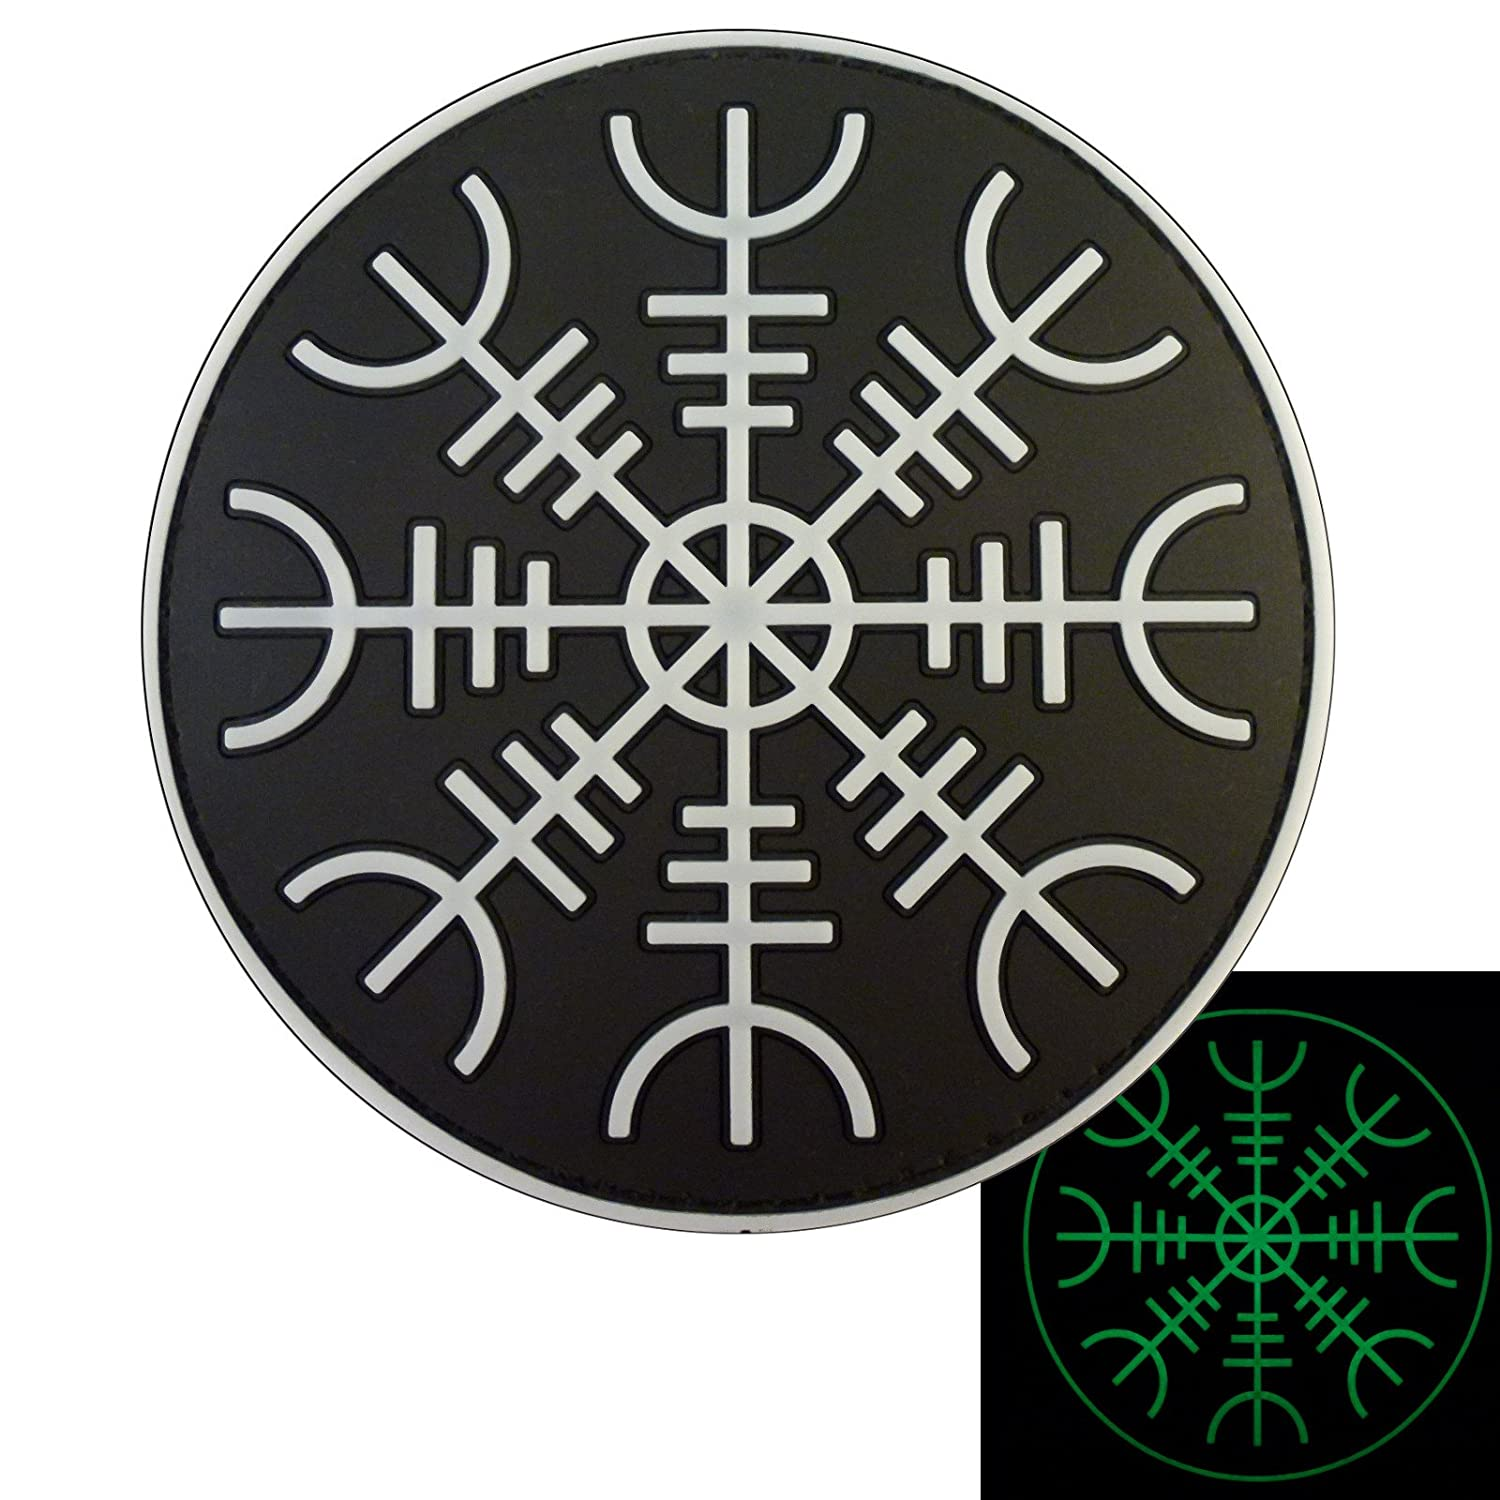 Glow Dark Aegishjalmr Viking Helm of Awe Terror Protection Morale PVC Rubber Touch Fastener Patch 2AFTER1 P.1780.1.V